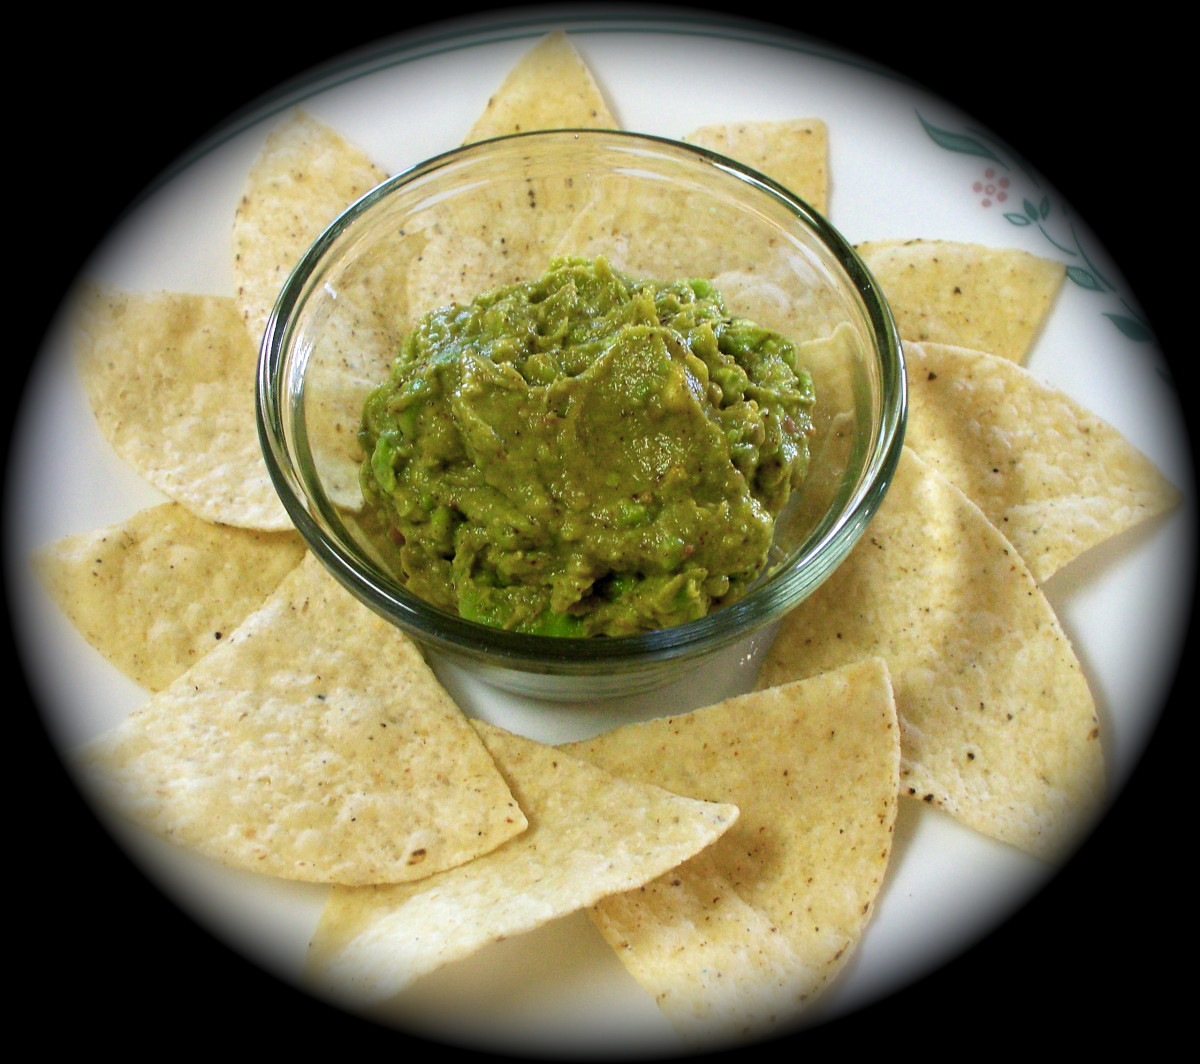 Serve with tortilla chips or as a condiment with your meal.